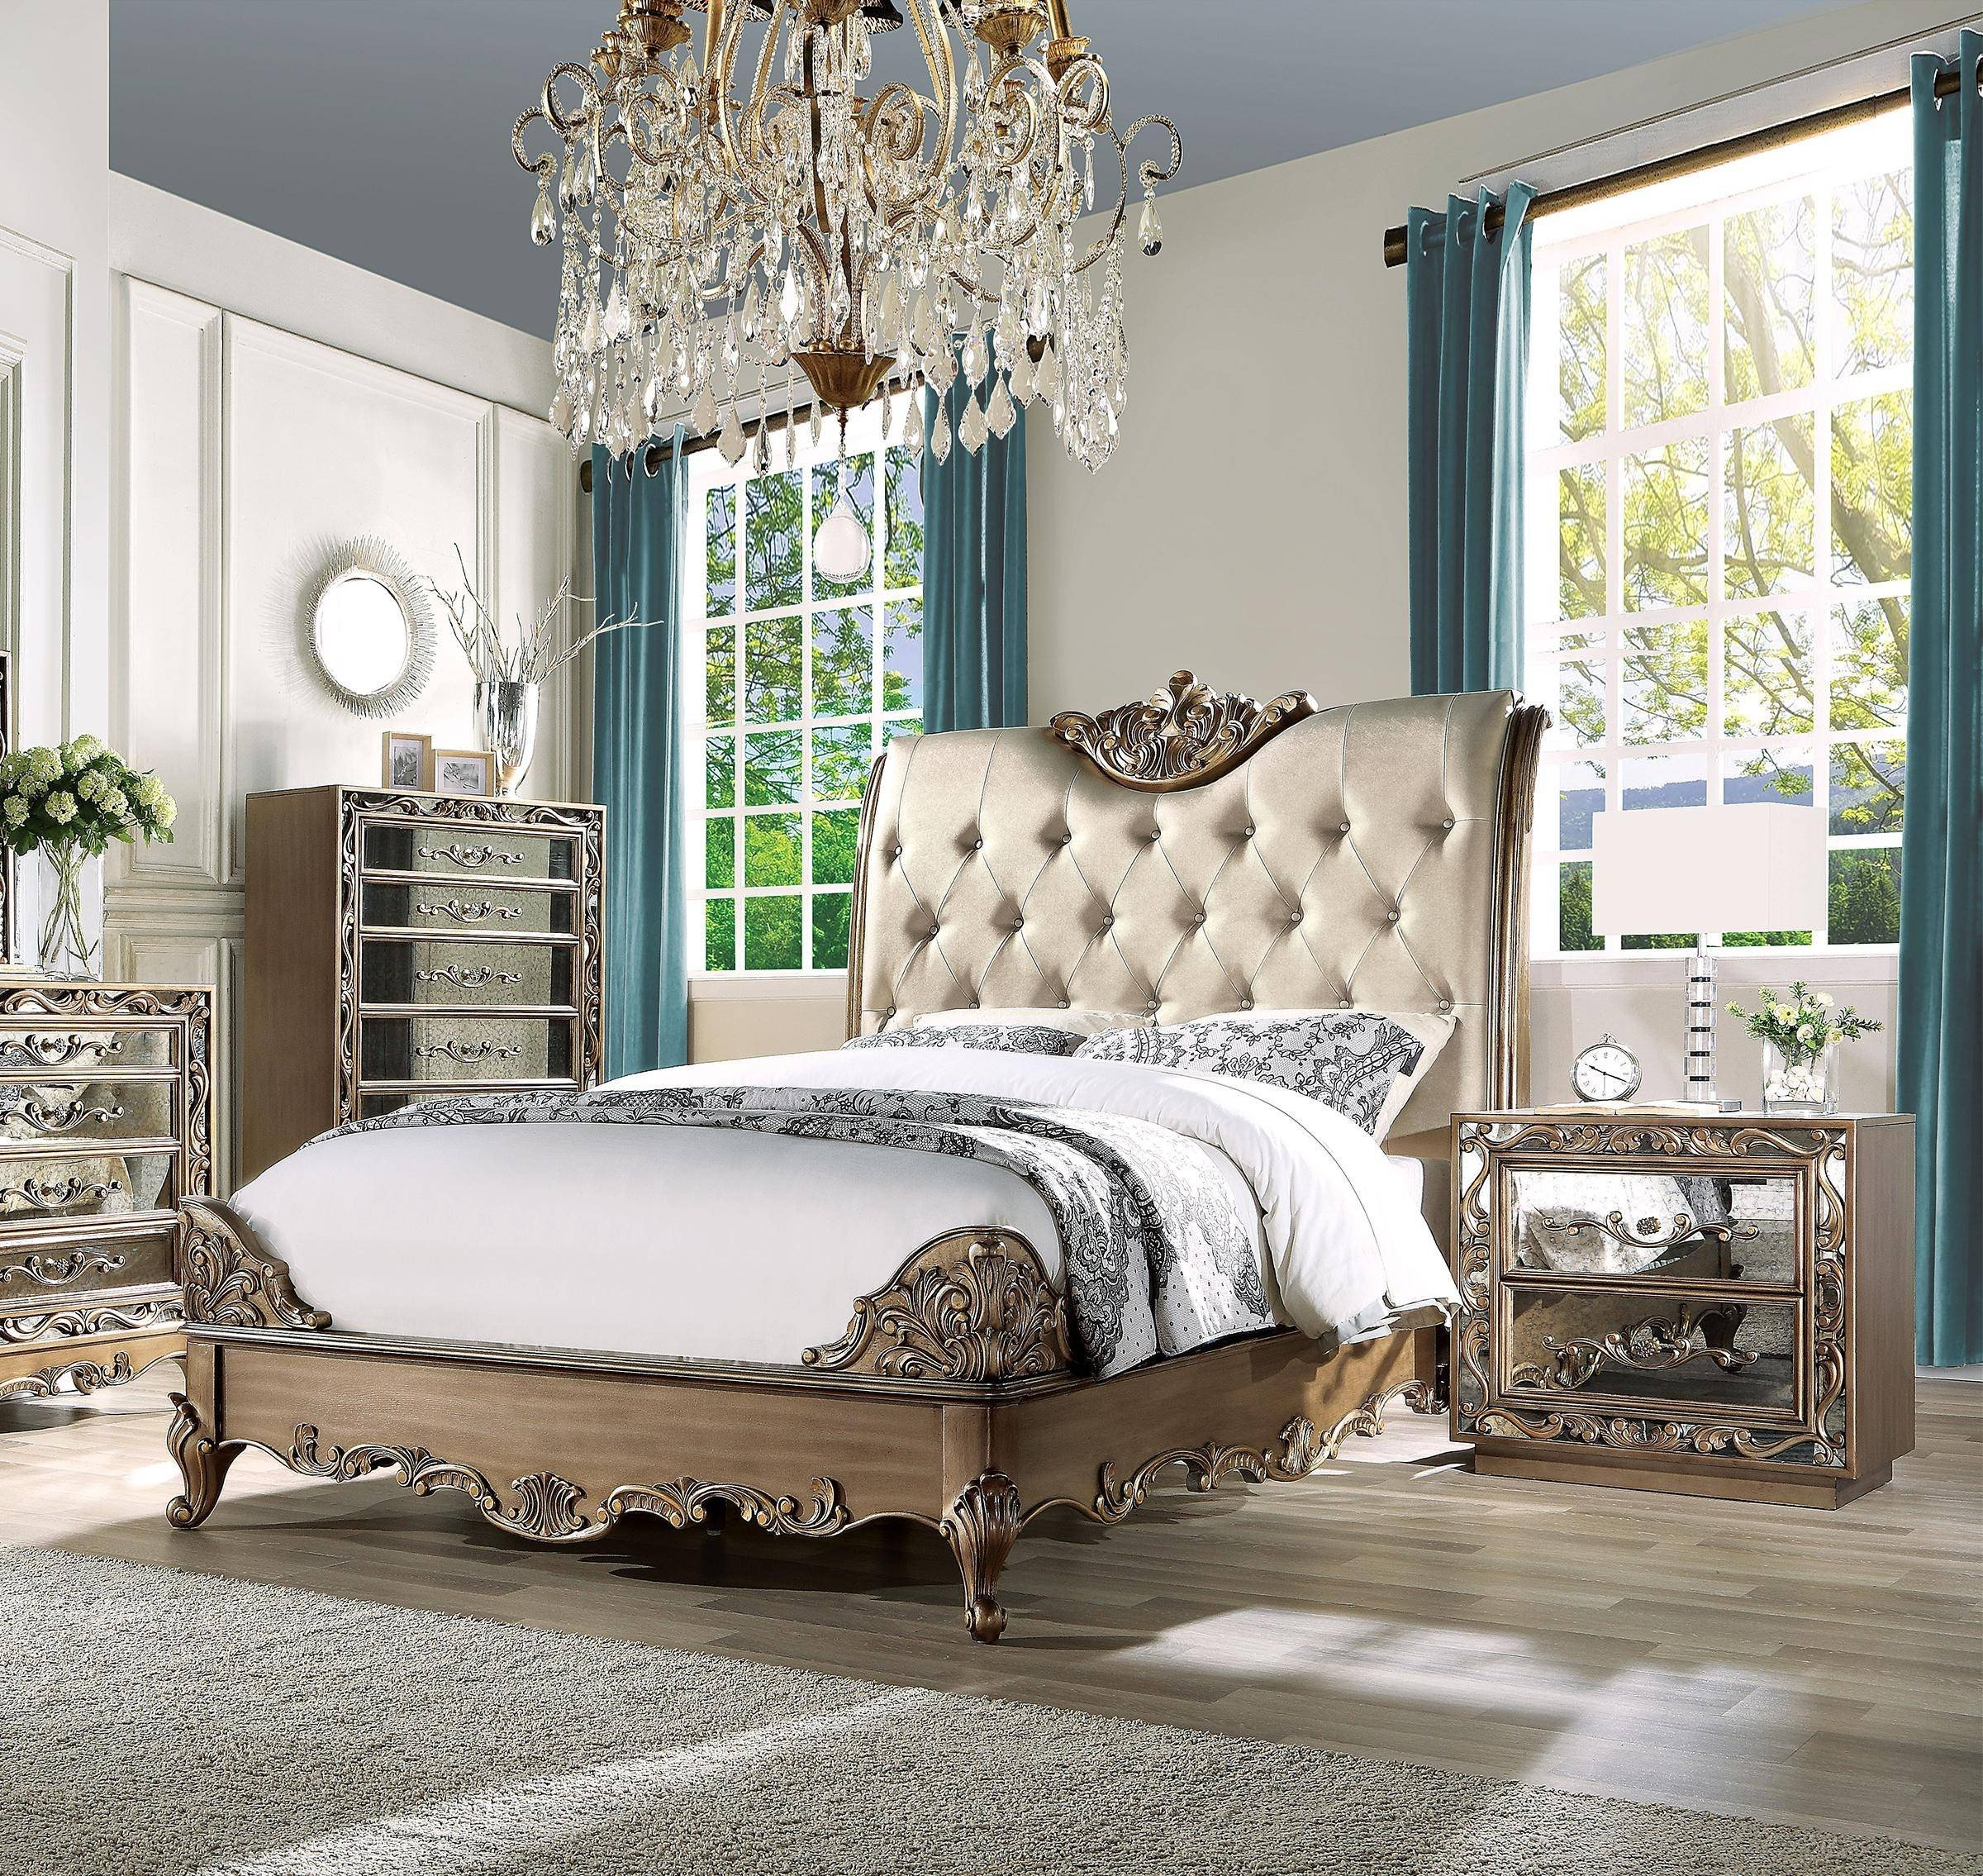 7 Piece Bedroom Set Inspirational Luxury King Bedroom Set 3 Antique Gold Champagne F Leather